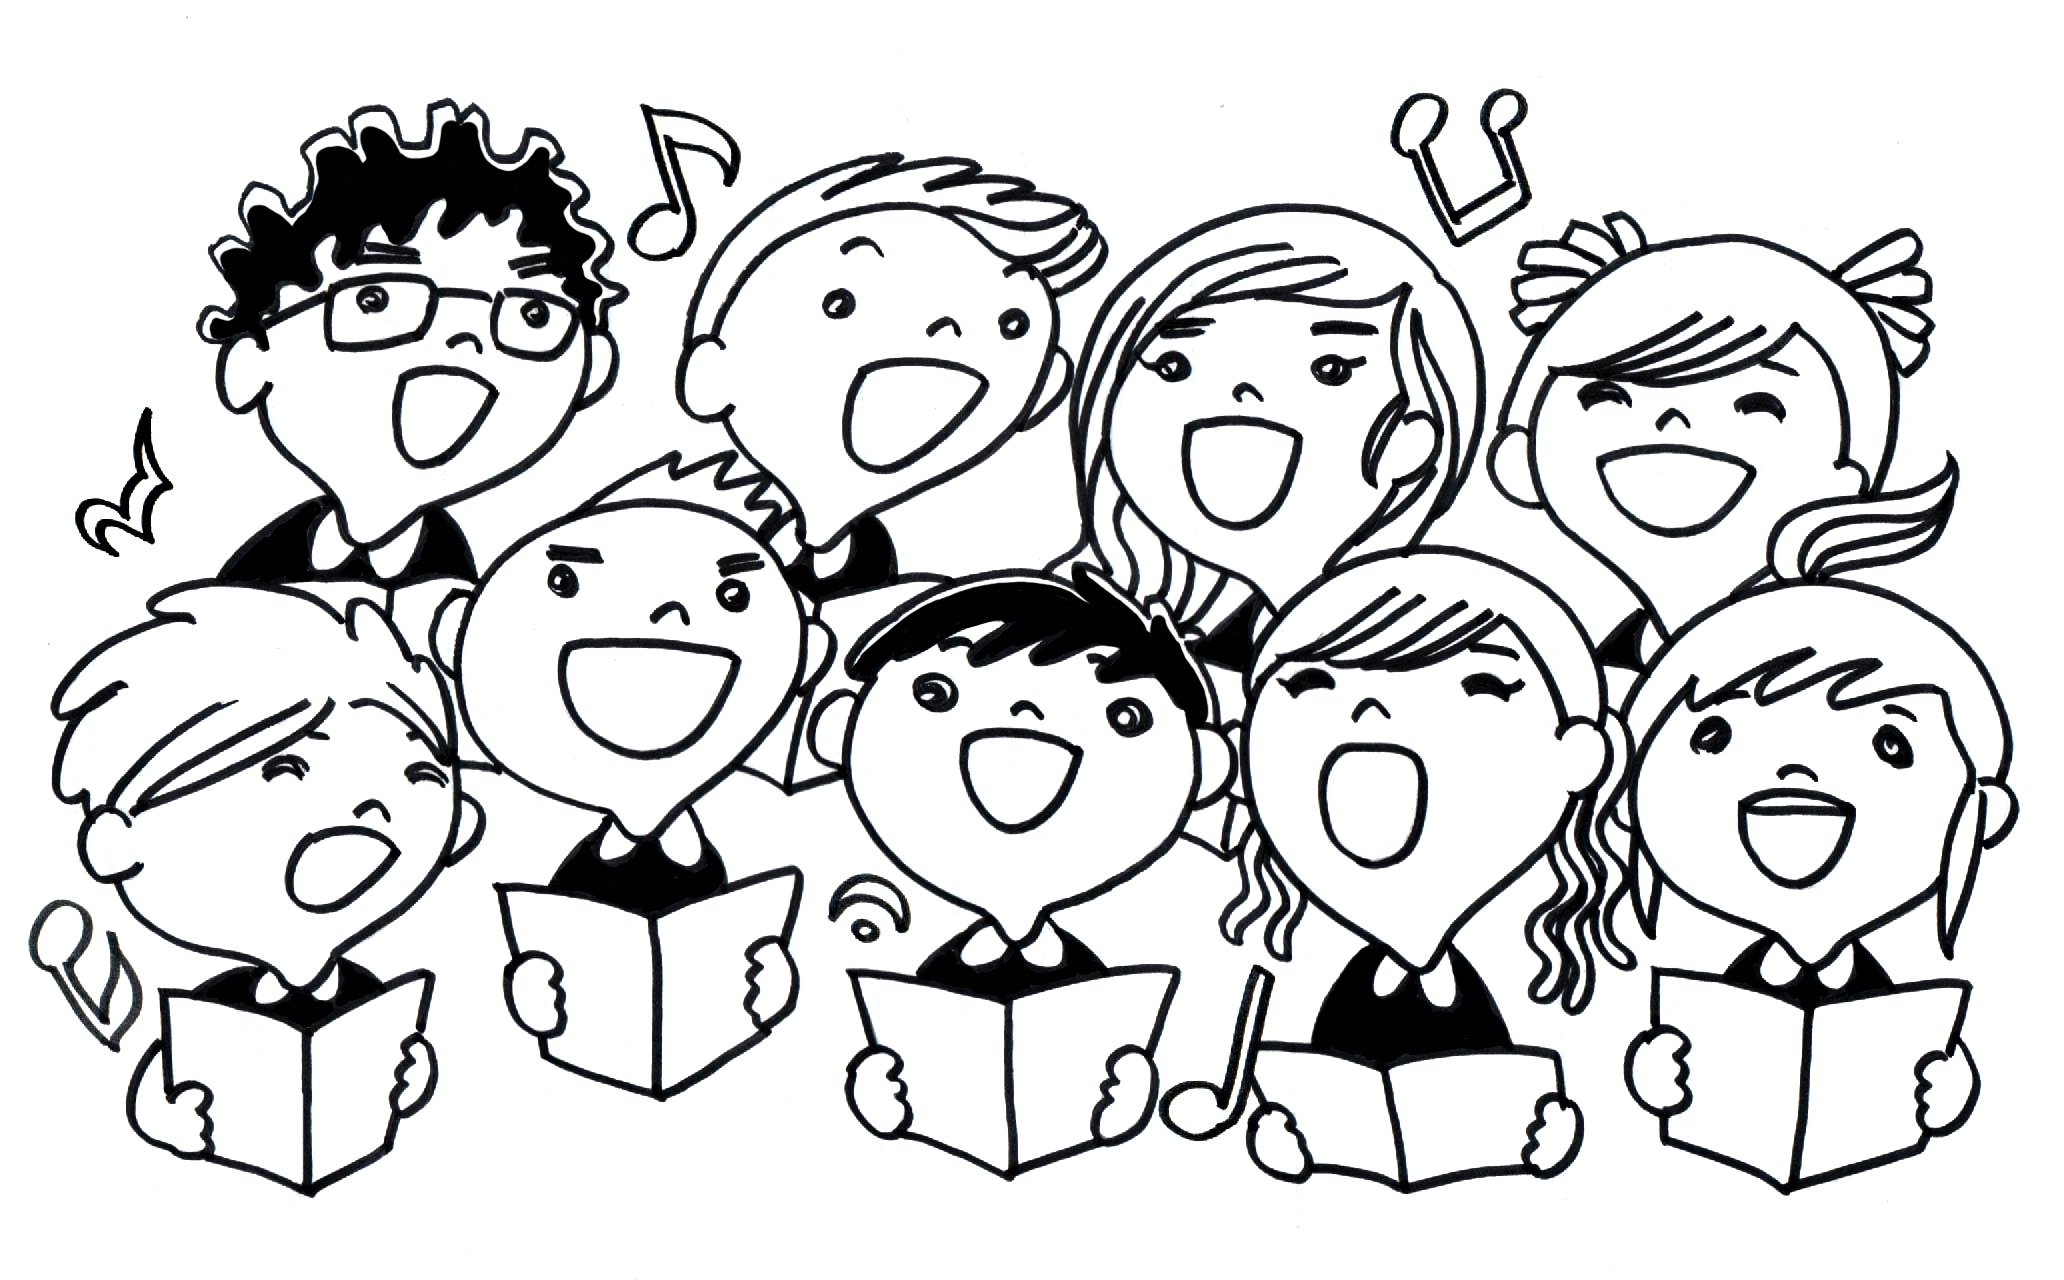 Choir anniversary clipart